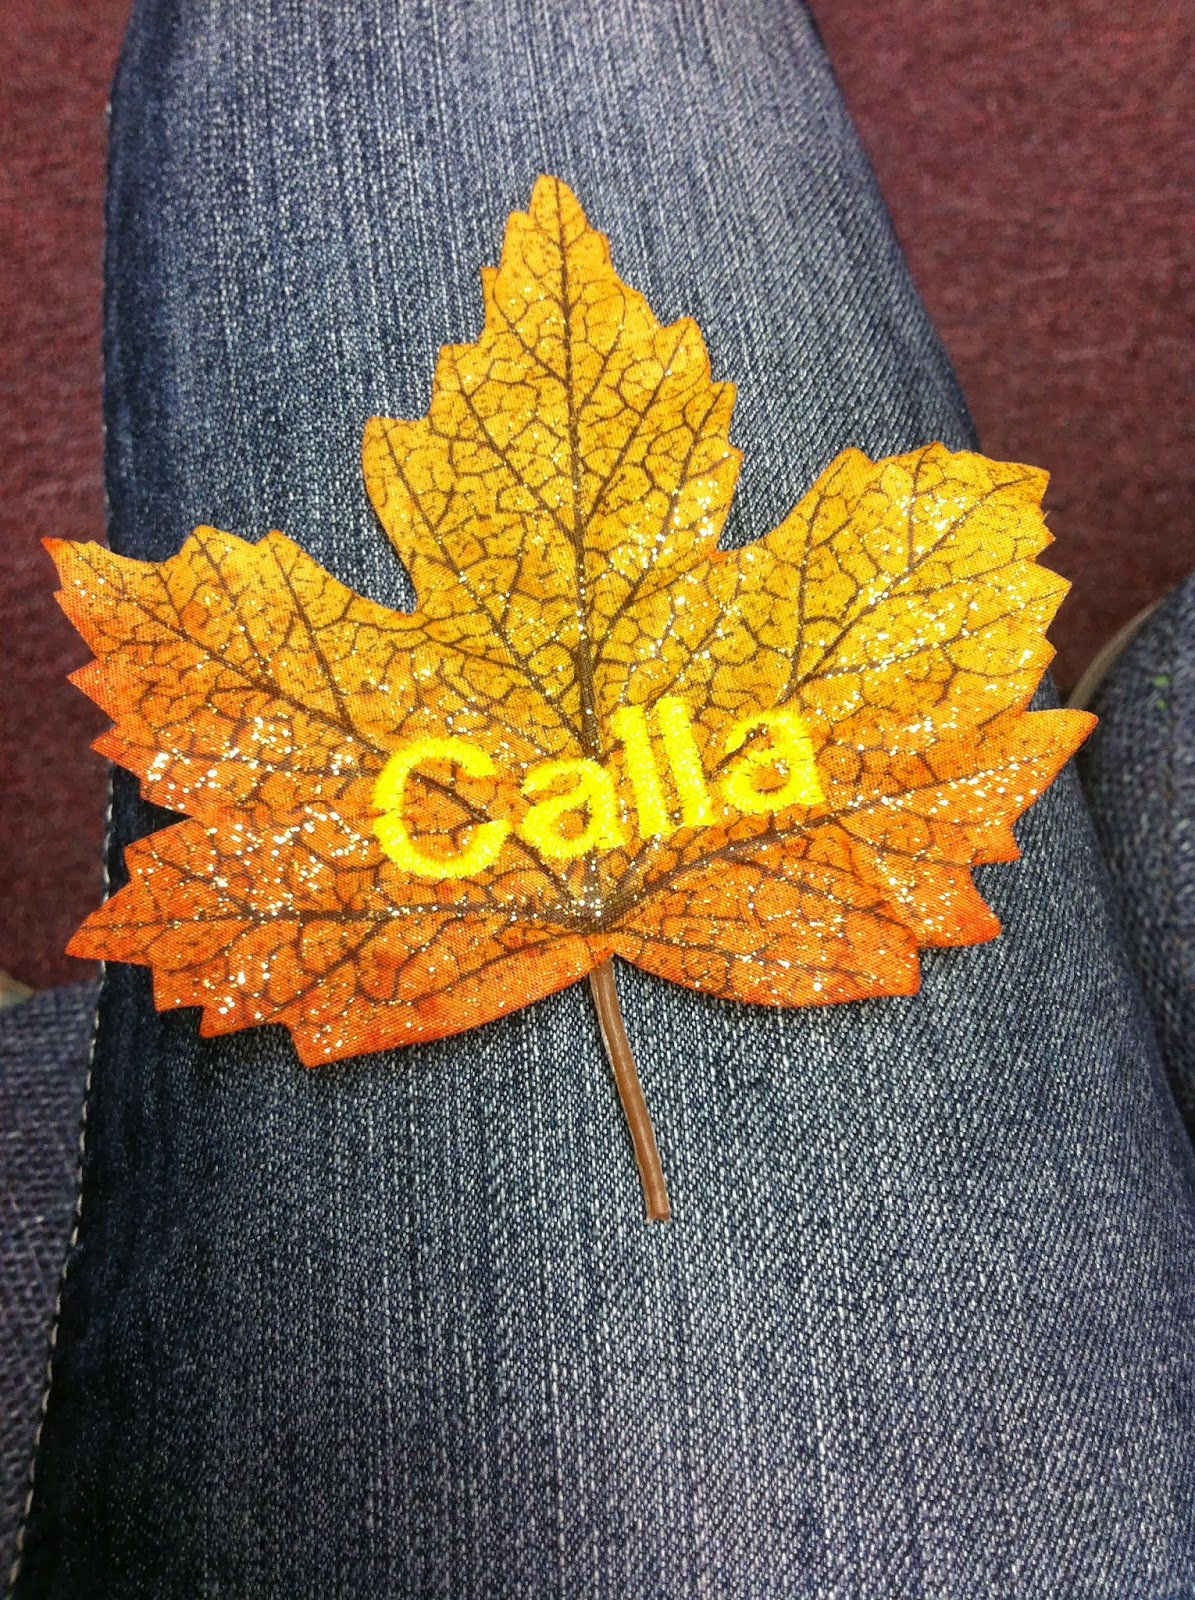 Calico cali designs embroidery on leaves